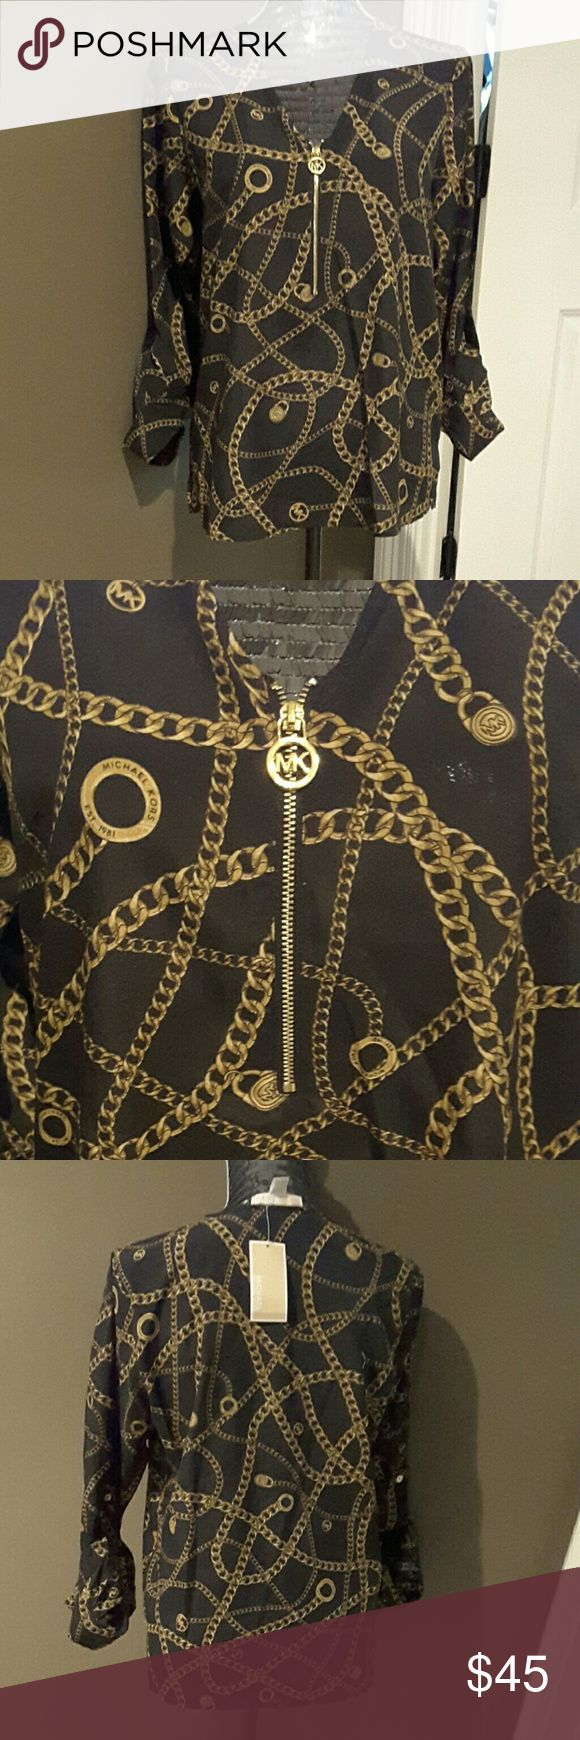 Michael Kors Chain Top Loose MK top with gold chain design and zipperee front MICHAEL Michael Kors Tops Blouses